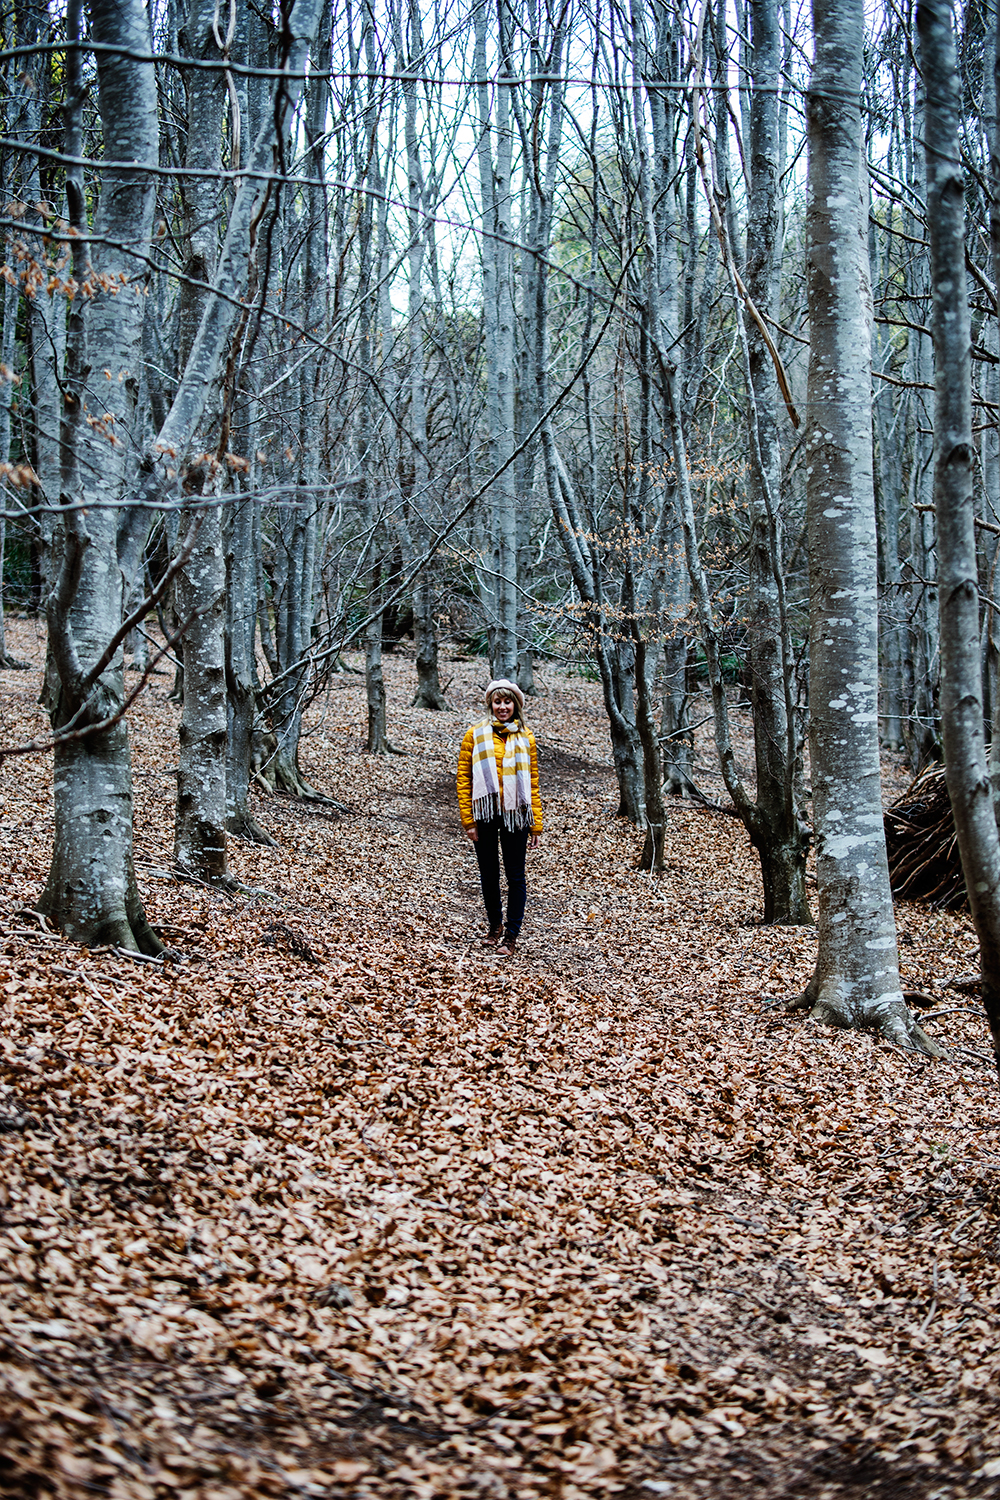 Susanna in The Woods